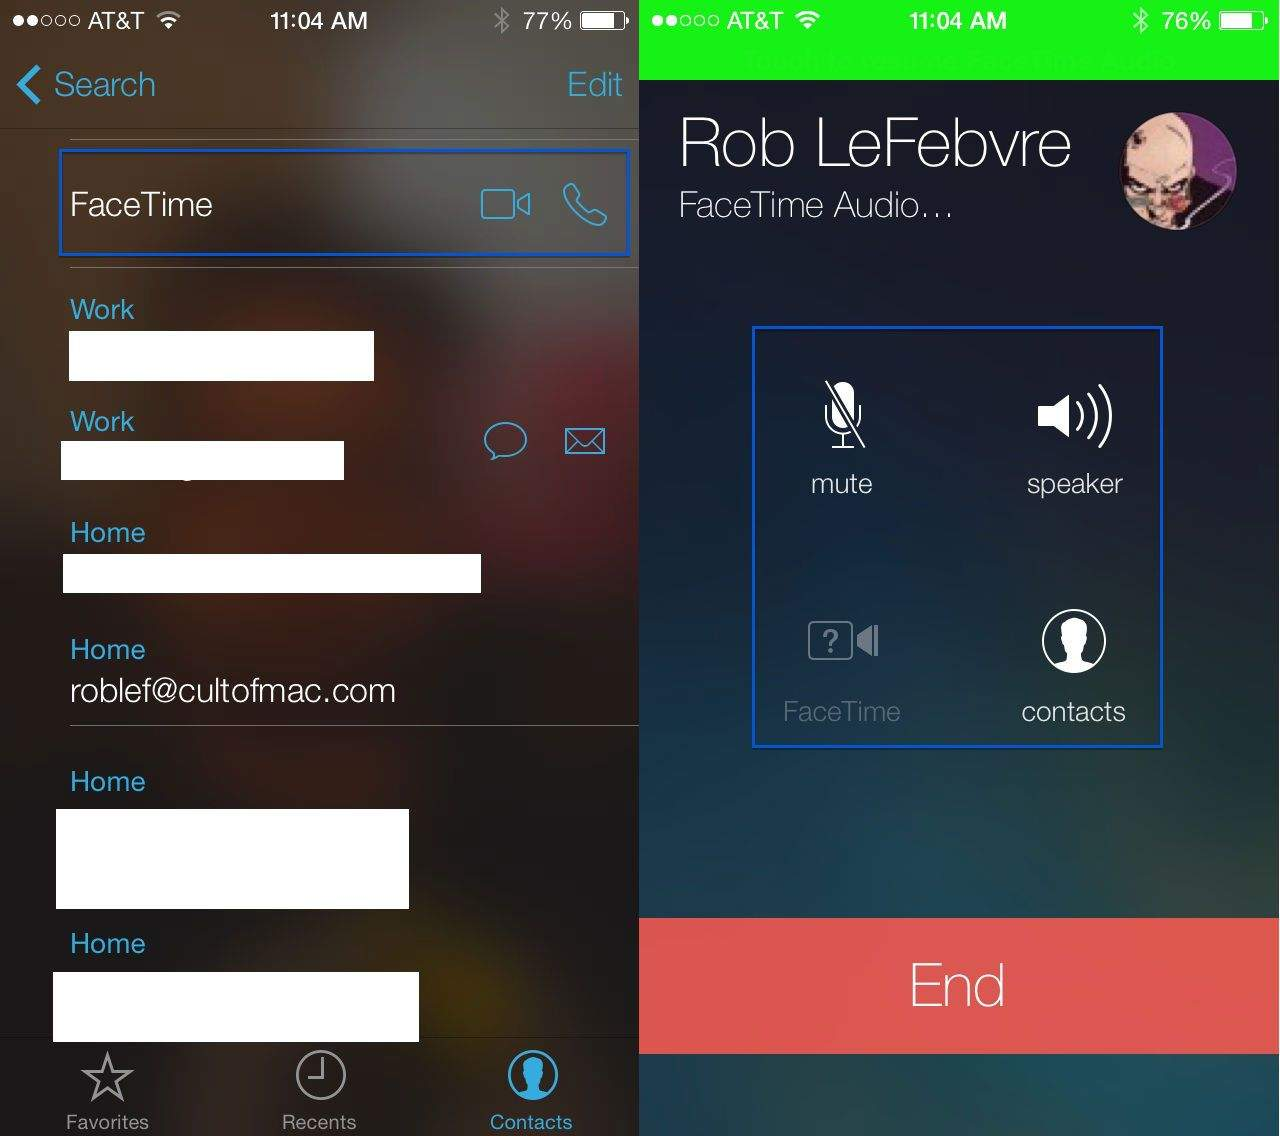 facetime audio-only